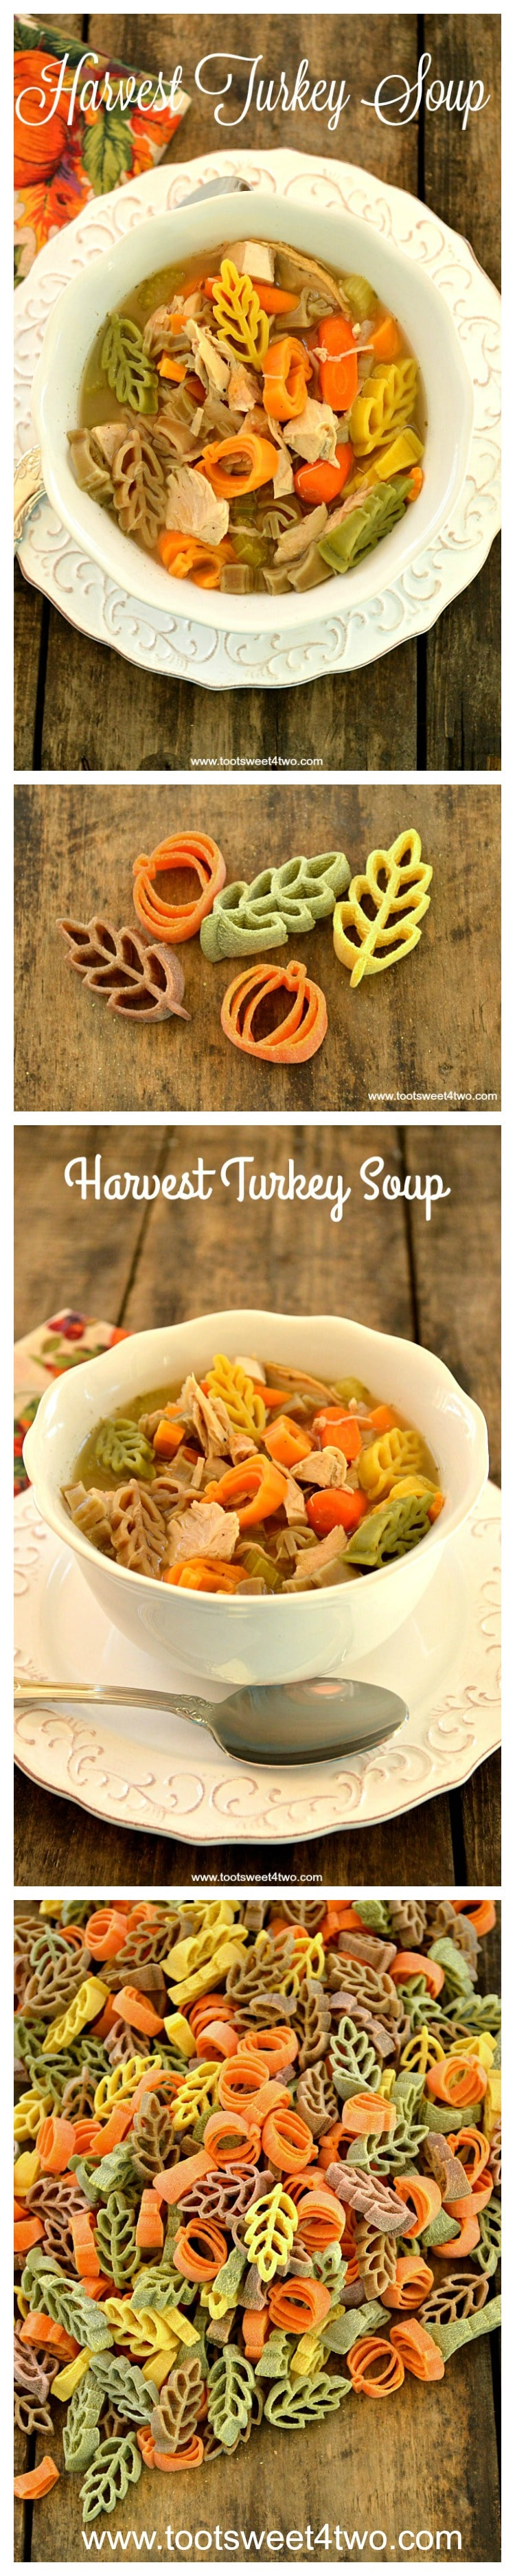 Harvest Turkey Soup - a delicious and satisfying soup